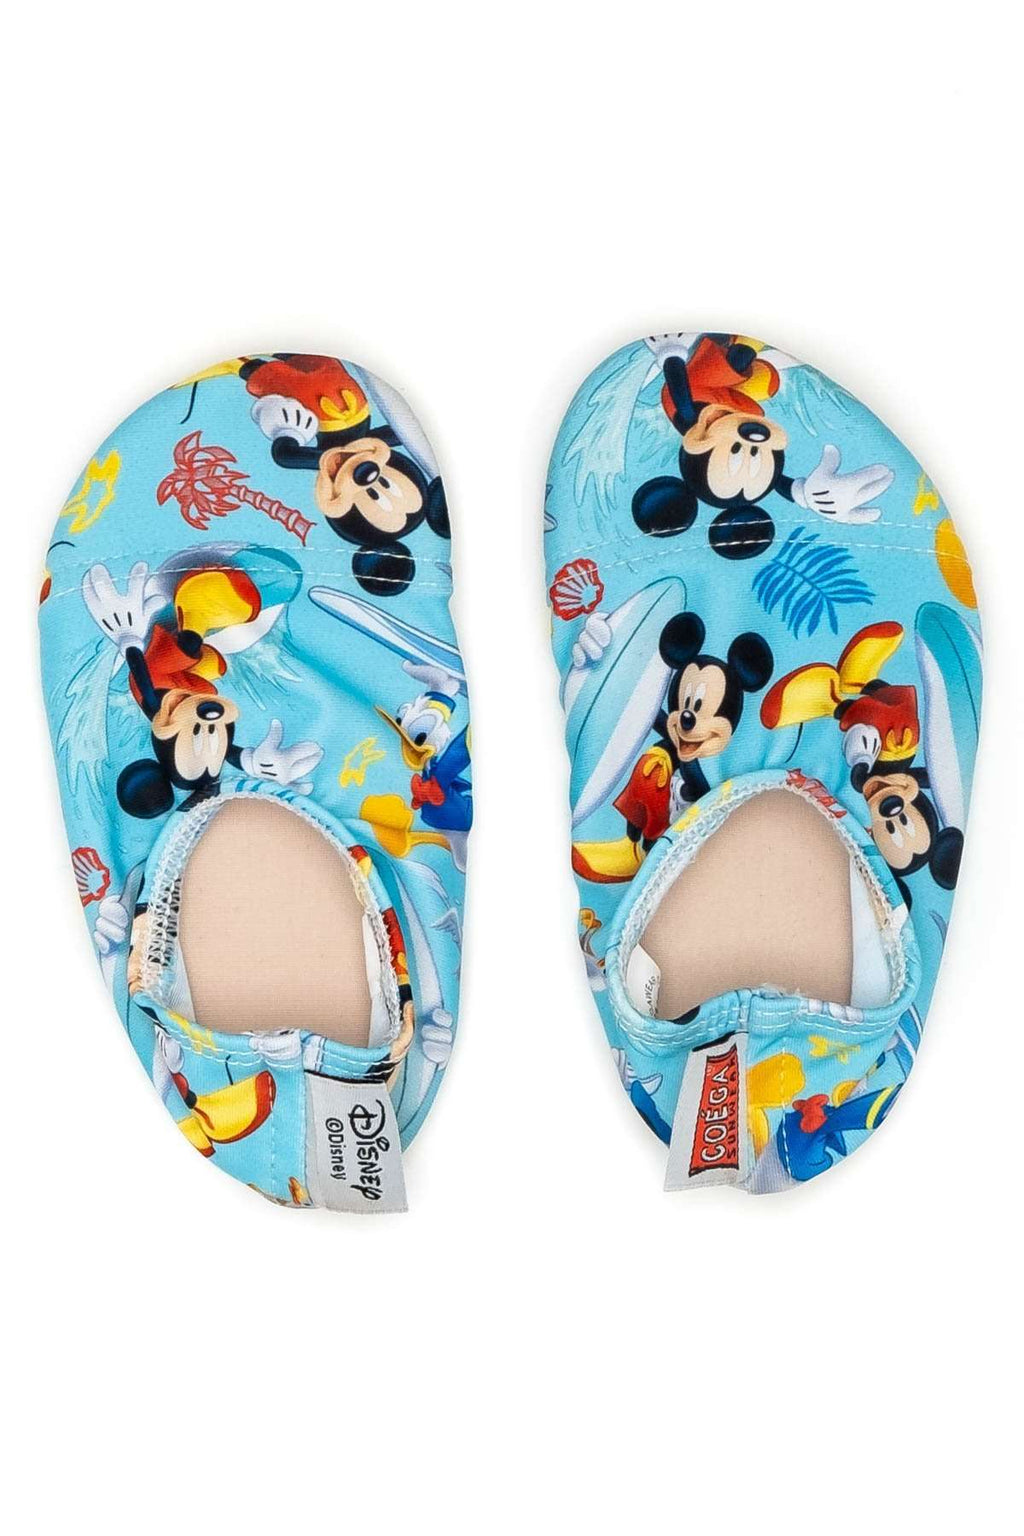 Coega Disney Baby Pool & Beach Shoes Teal Mickey Surf / Infant Ultra Light Footwear